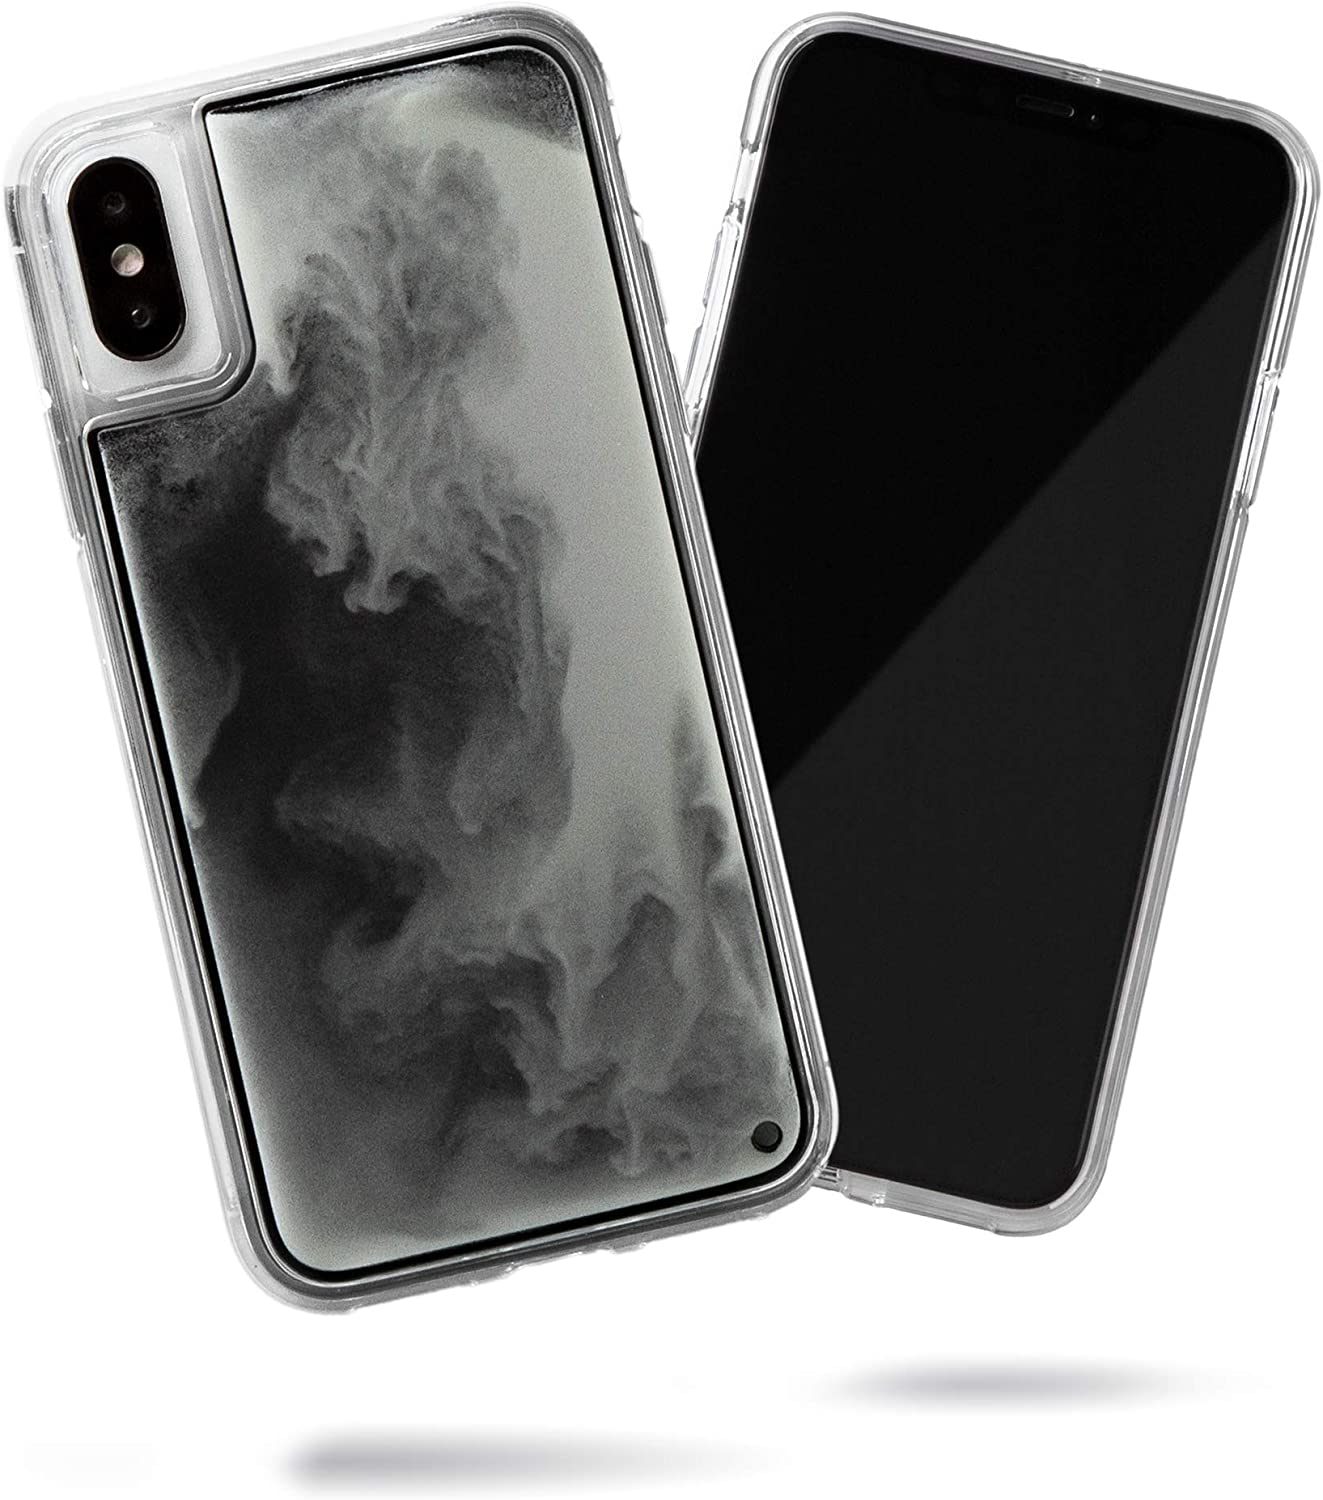 SteepLab Flowing Neon Sand Liquid Case for iPhone Xs & iPhone X - Full Body Protection with Raised Bezel - Hi Contrast Black n White